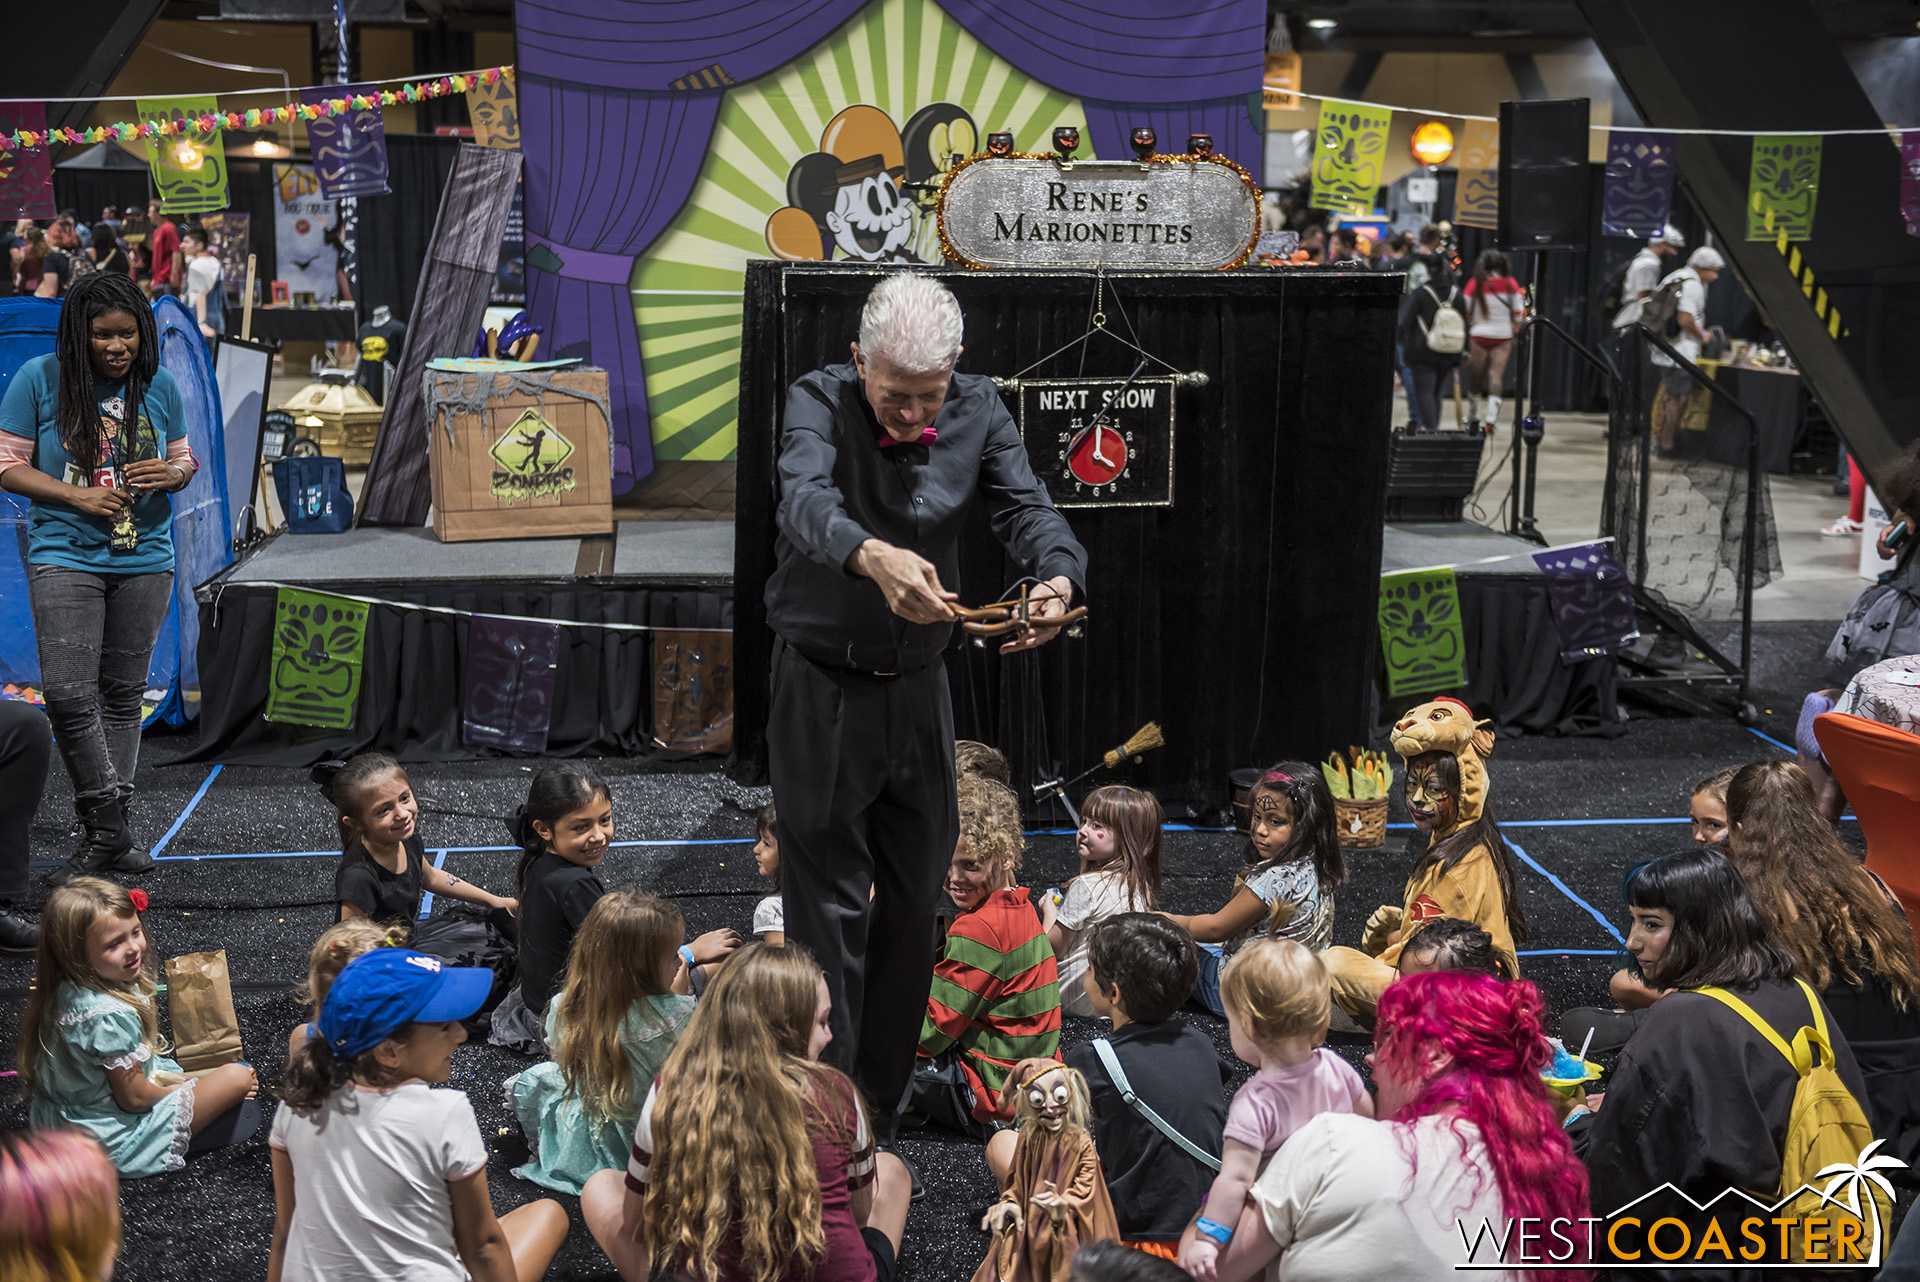 Joe Selph does a charming-scary puppet show.